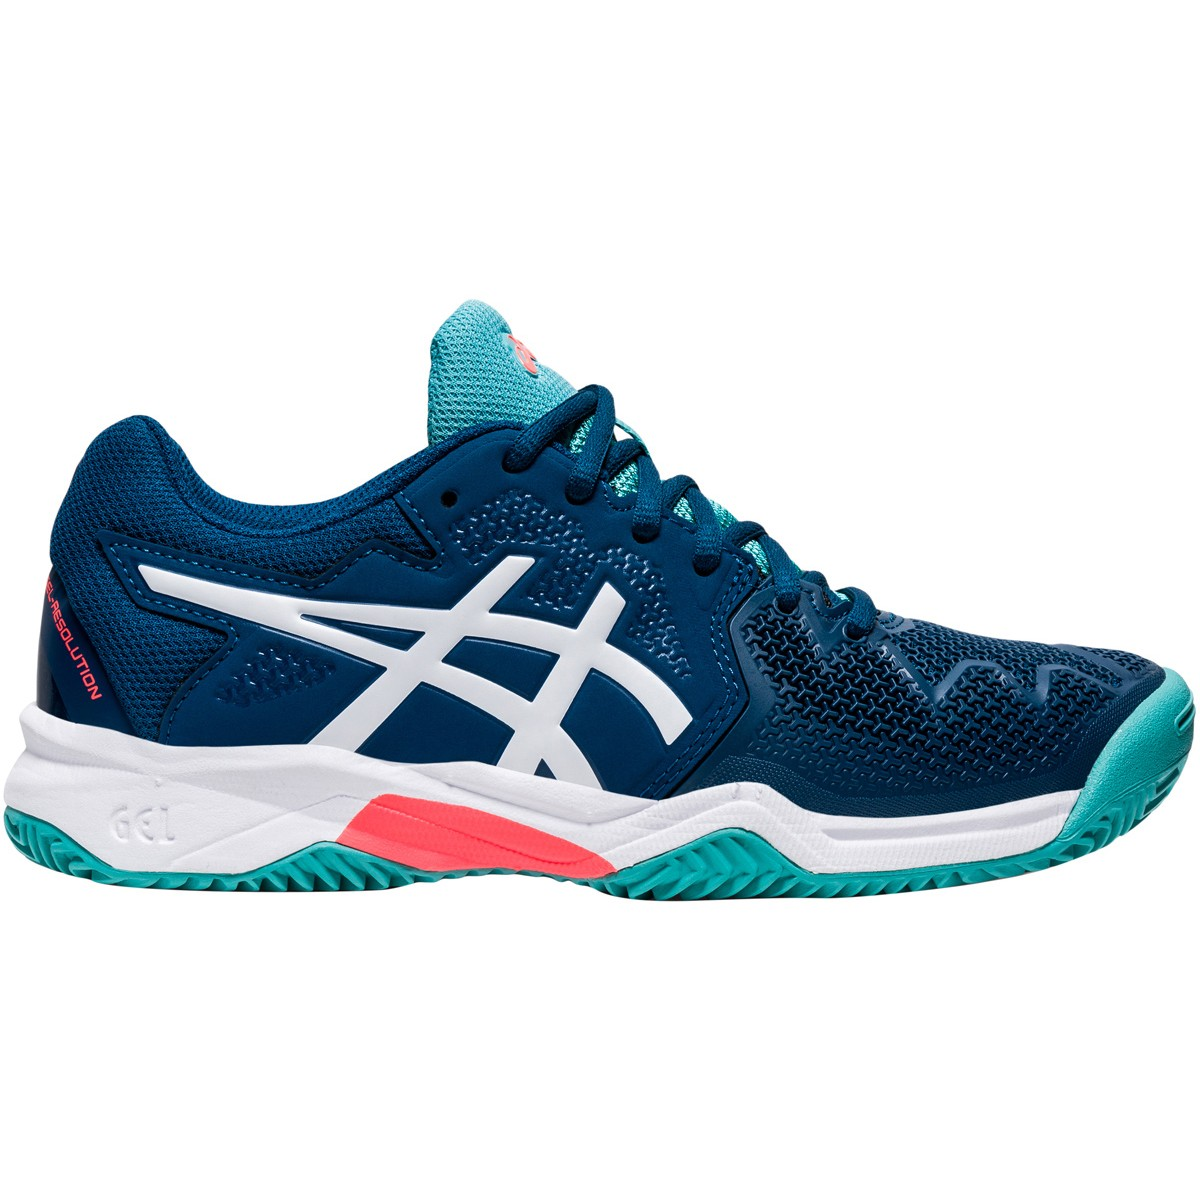 JUNIOR ASICS GEL RESOLUTION GS CLAY COURT SHOES